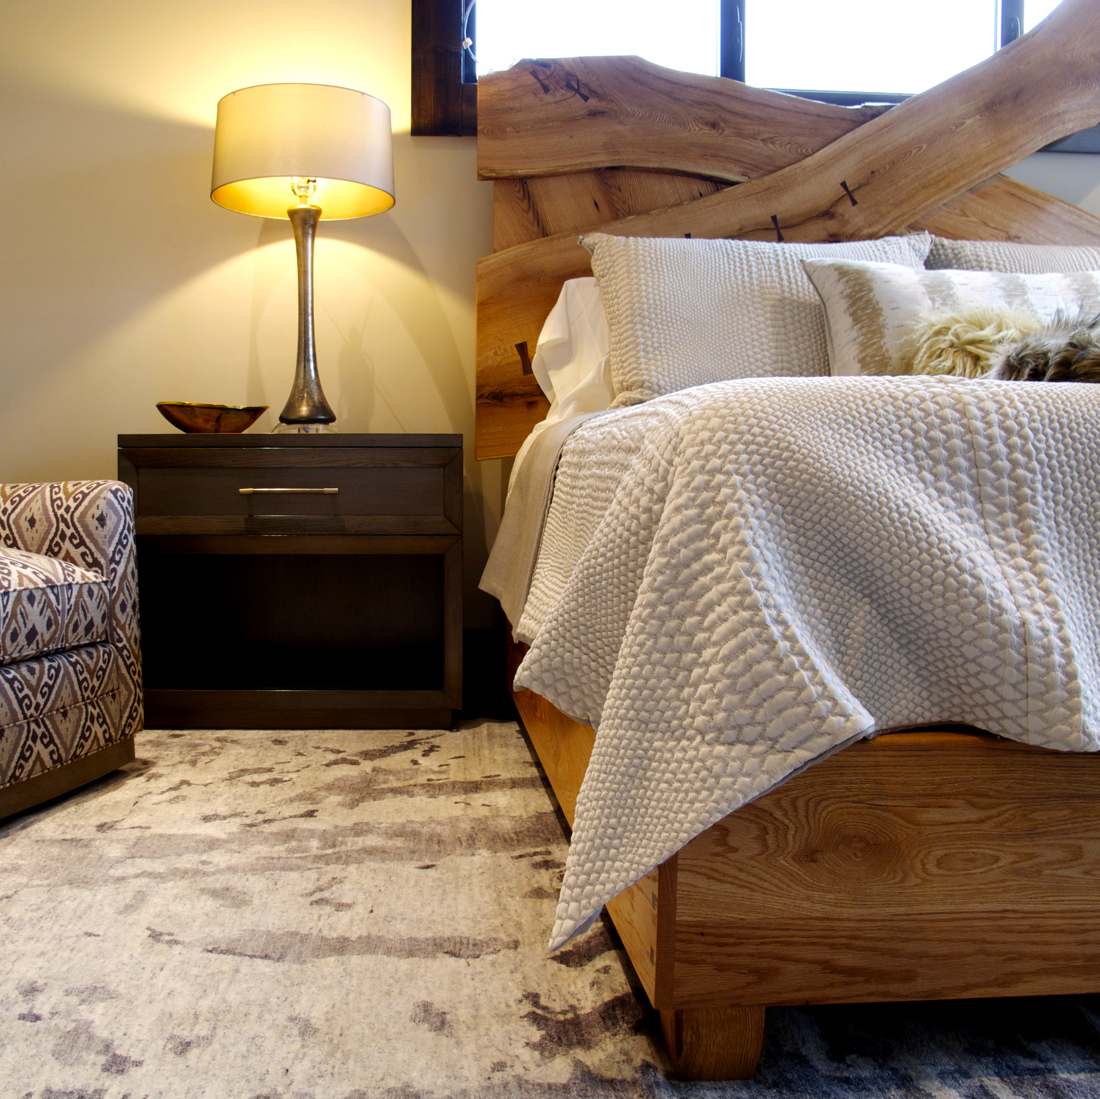 Rustic Luxe Bed - The slabs were woven together for a dramatic head board. Look at all the character in the wood from the harsh weather conditions on top of Beech Mountain.